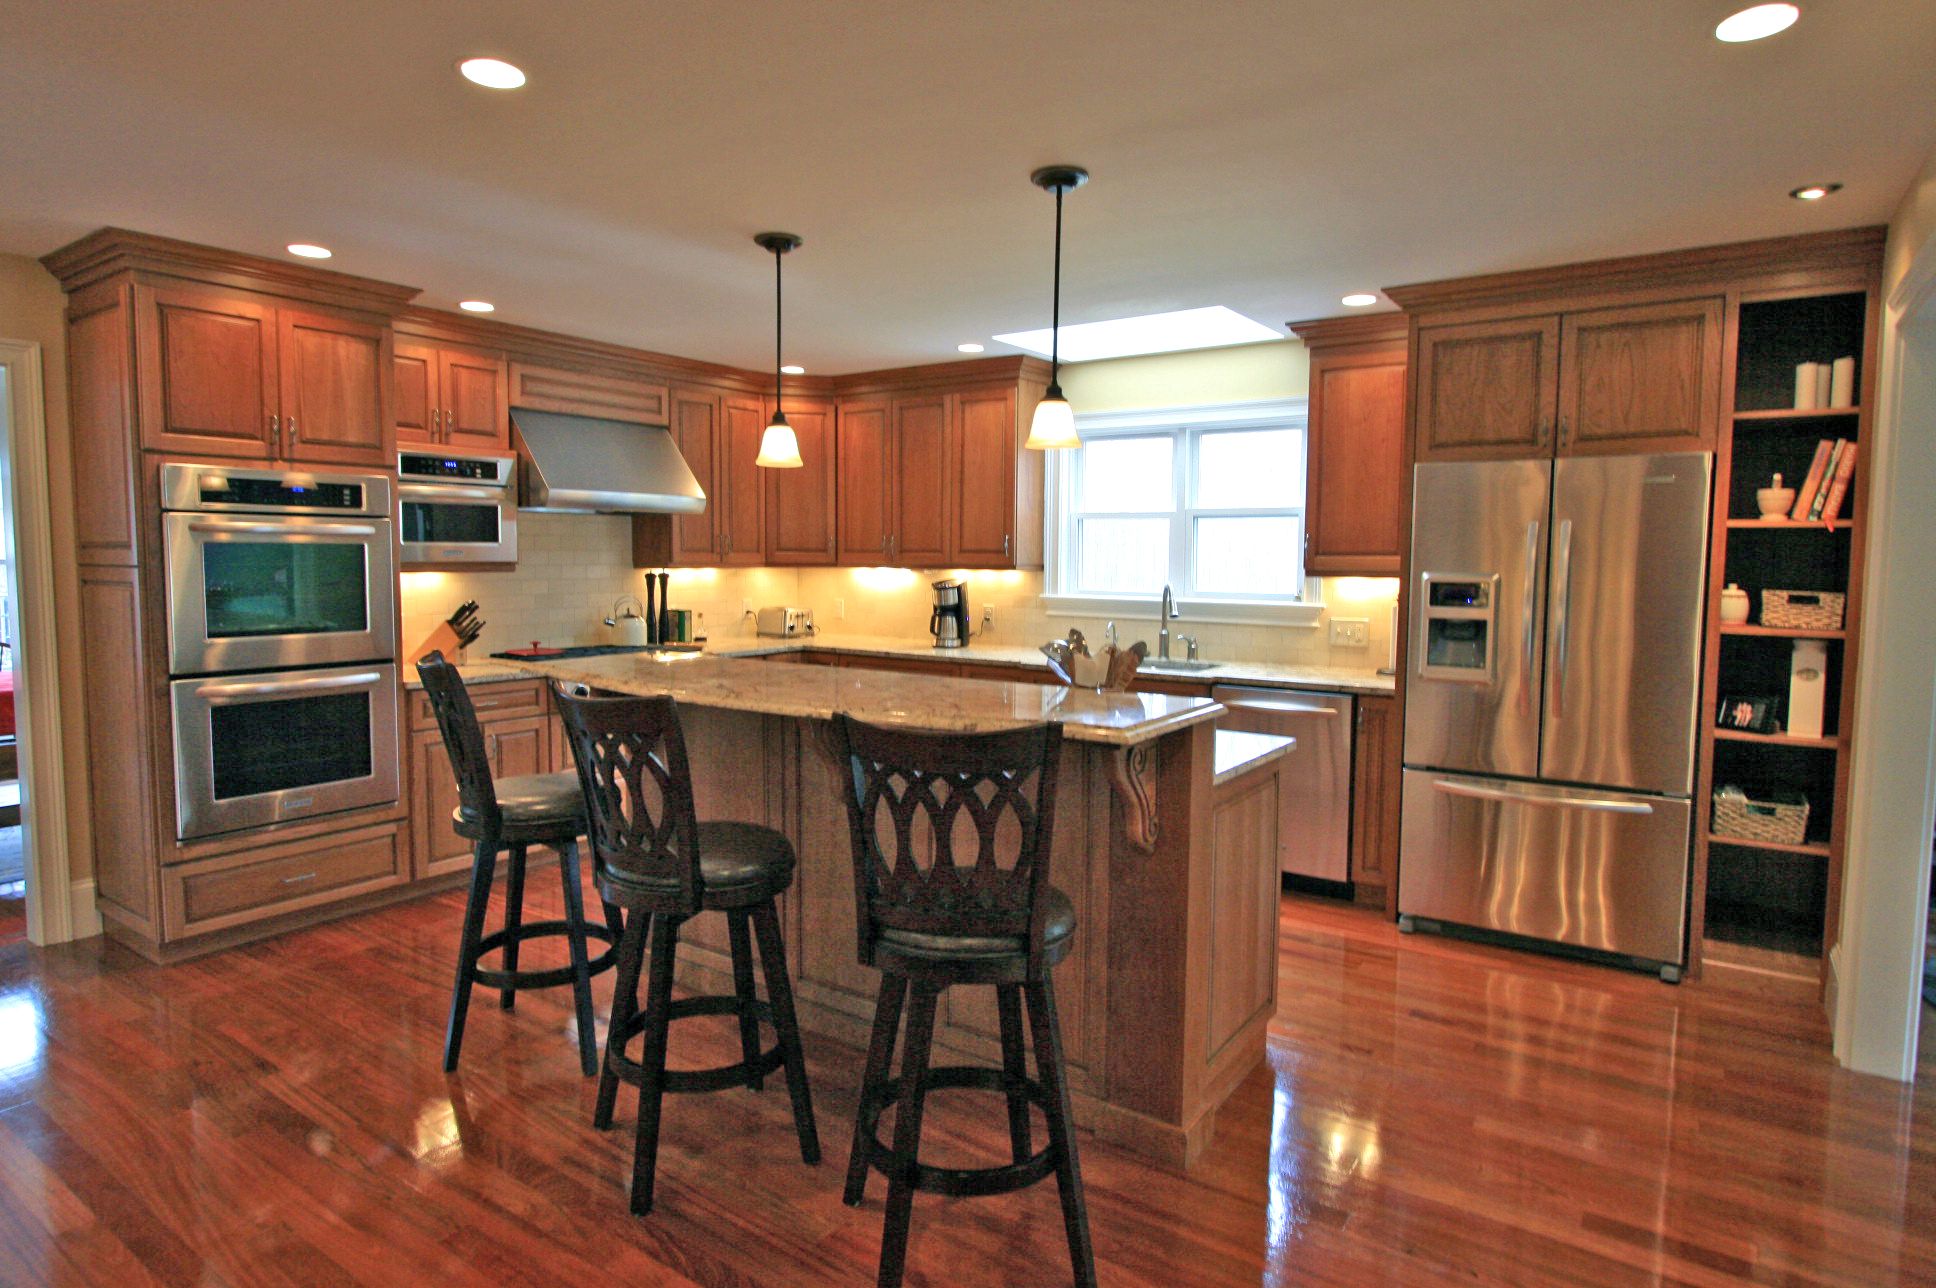 Kitchens Ideas Pictures Check Out The Pics Of New Kitchens Halliday Construction